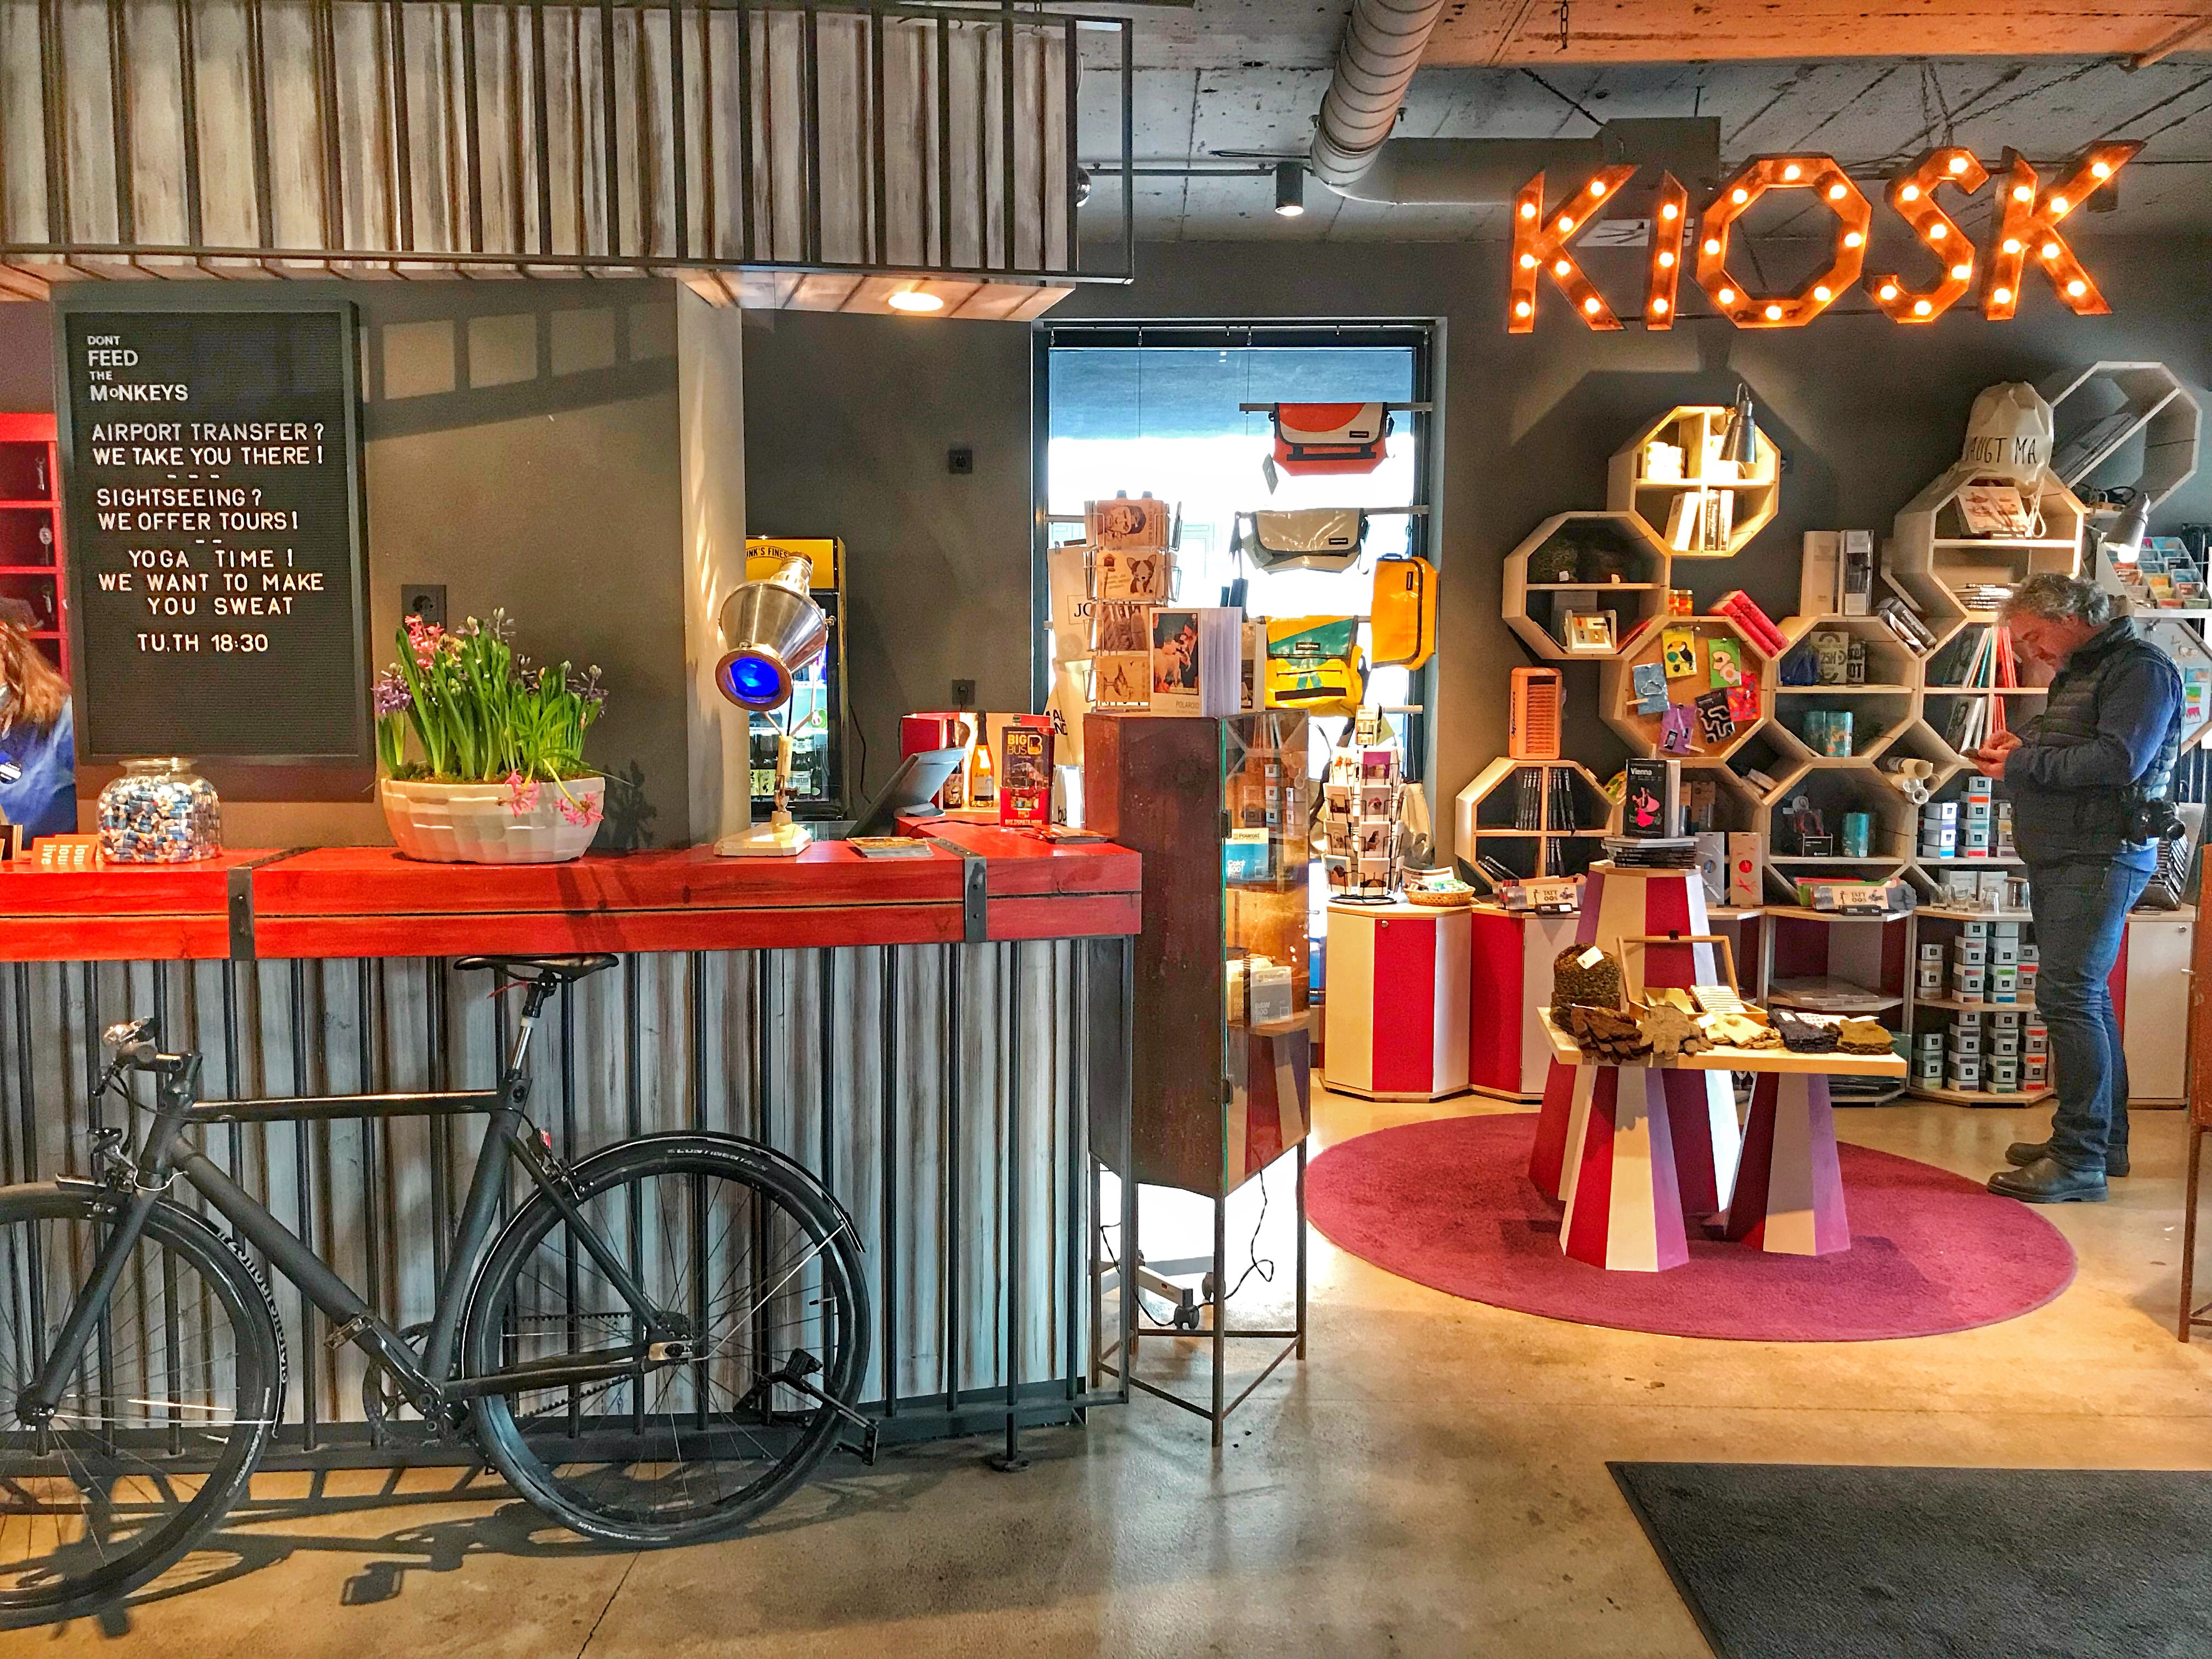 Quirky circus themed hotel 25hours vienna for Design hotel 25 hours vienna